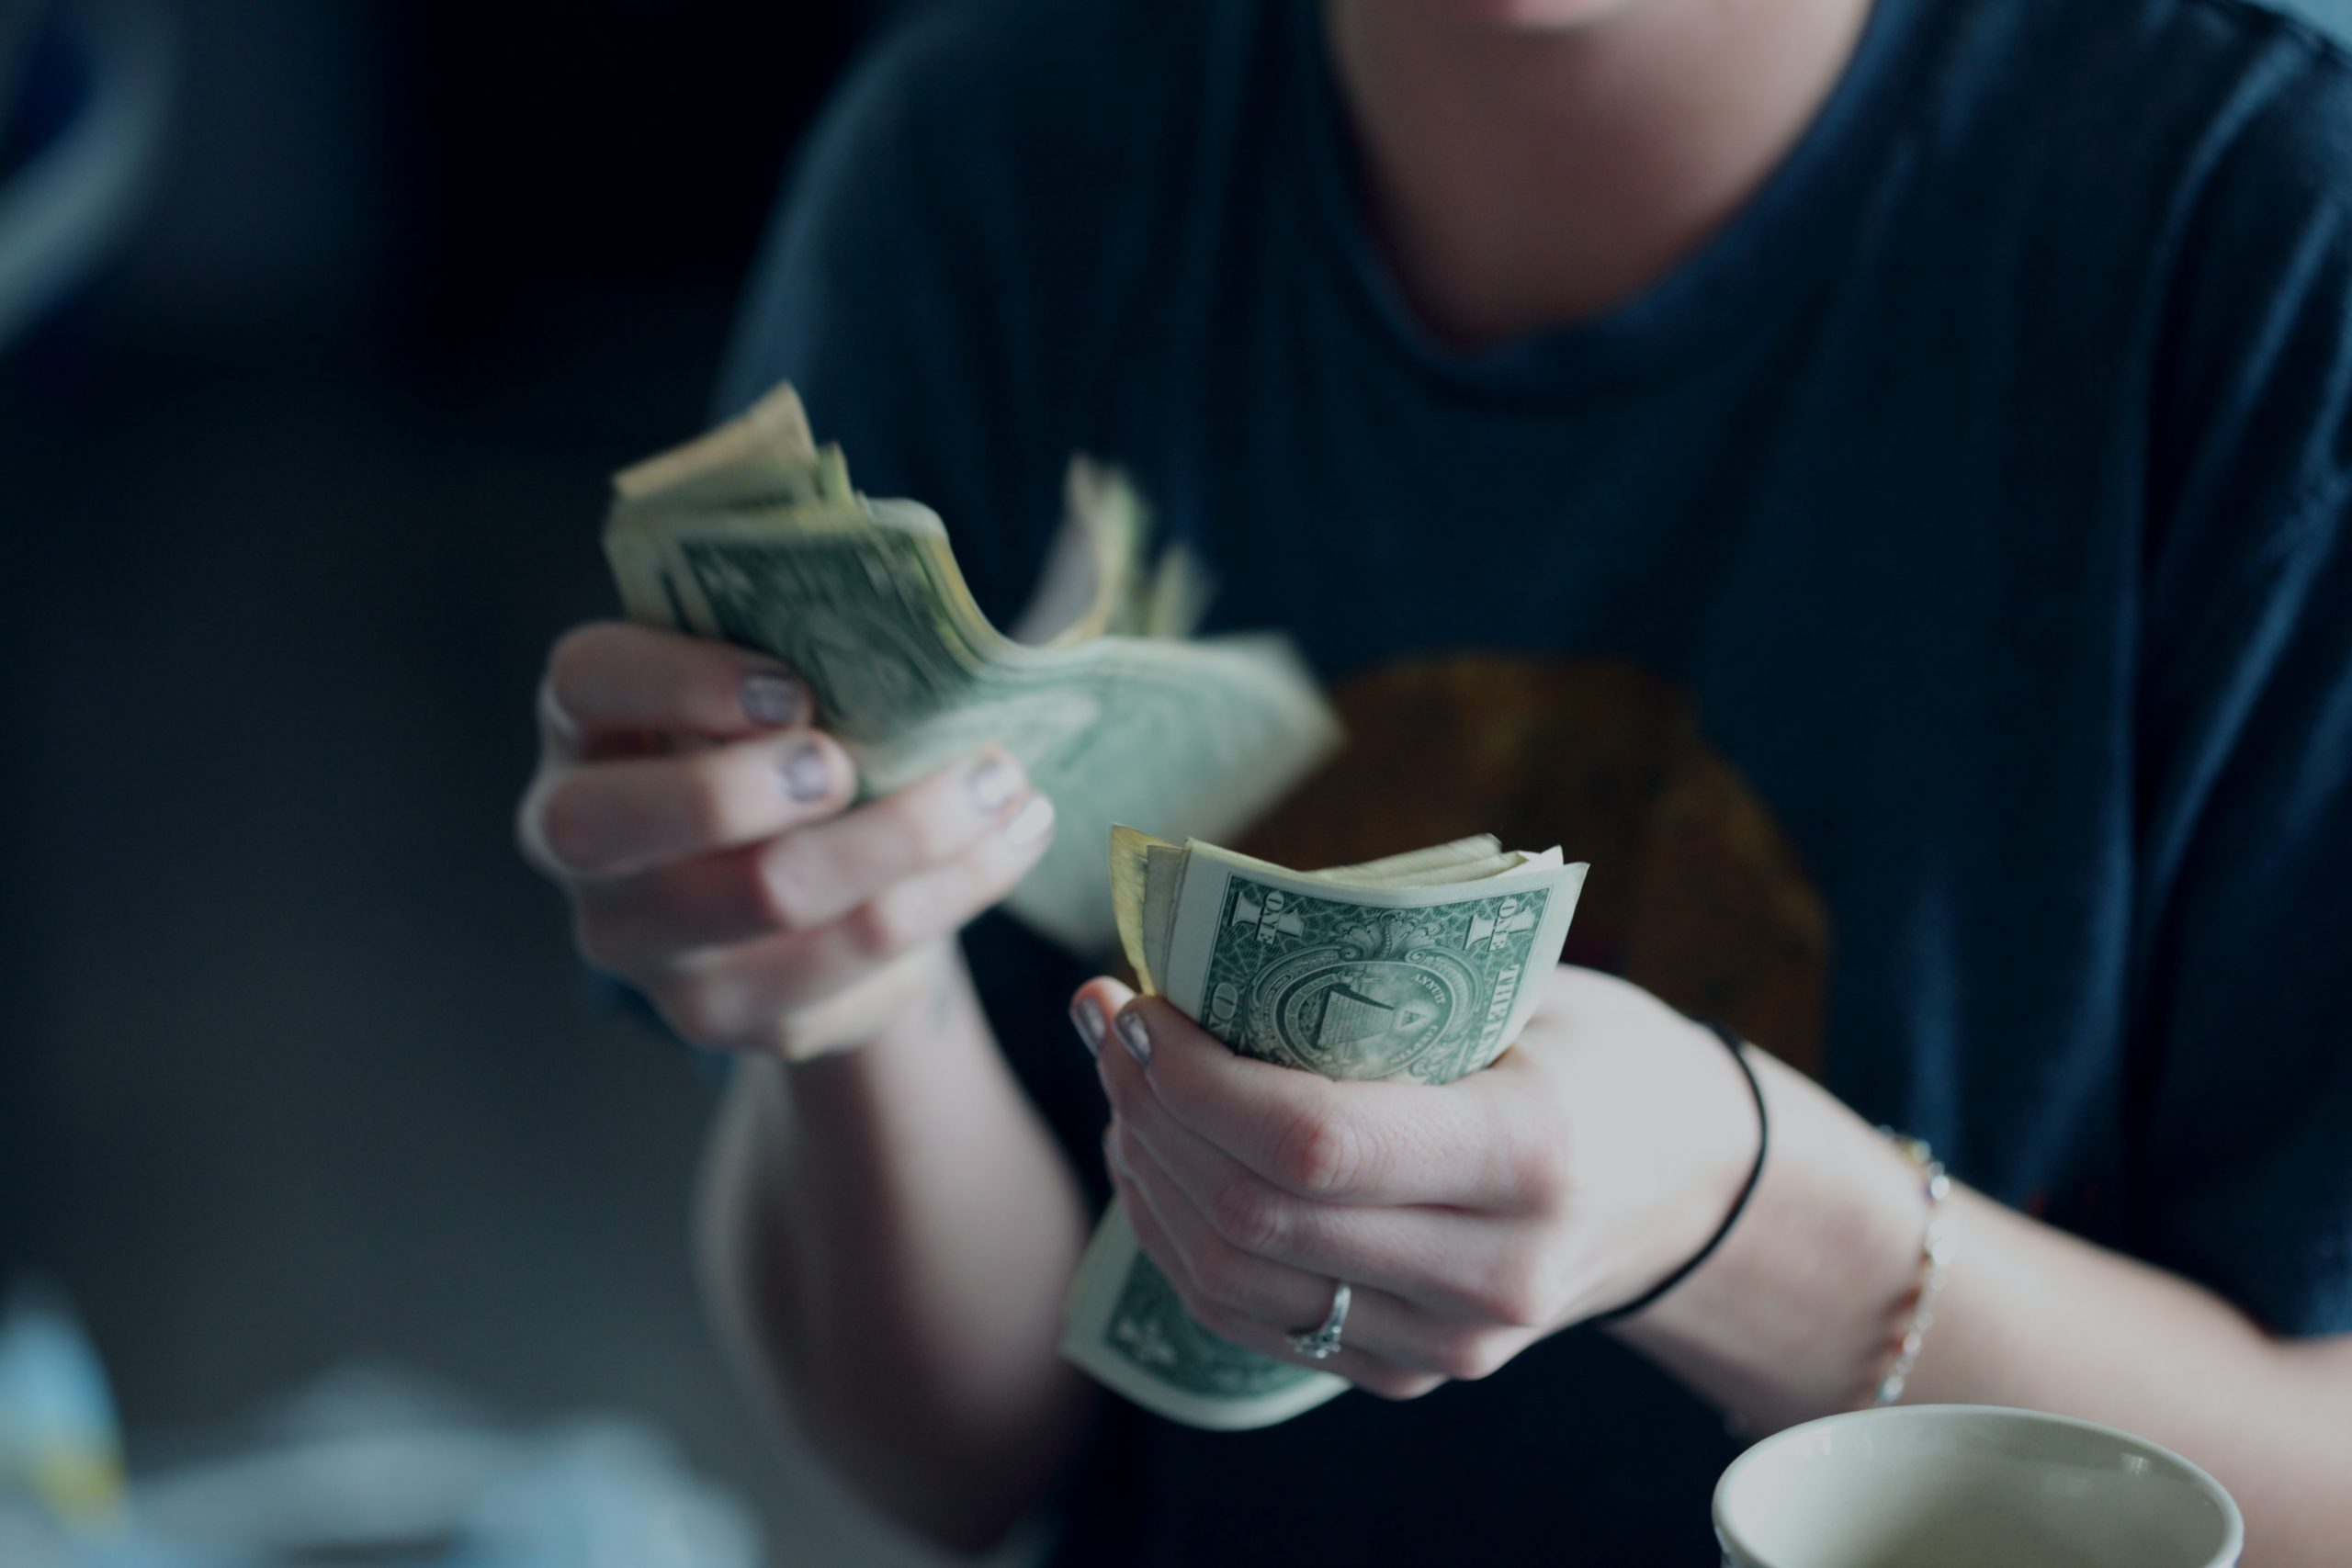 Counting money.